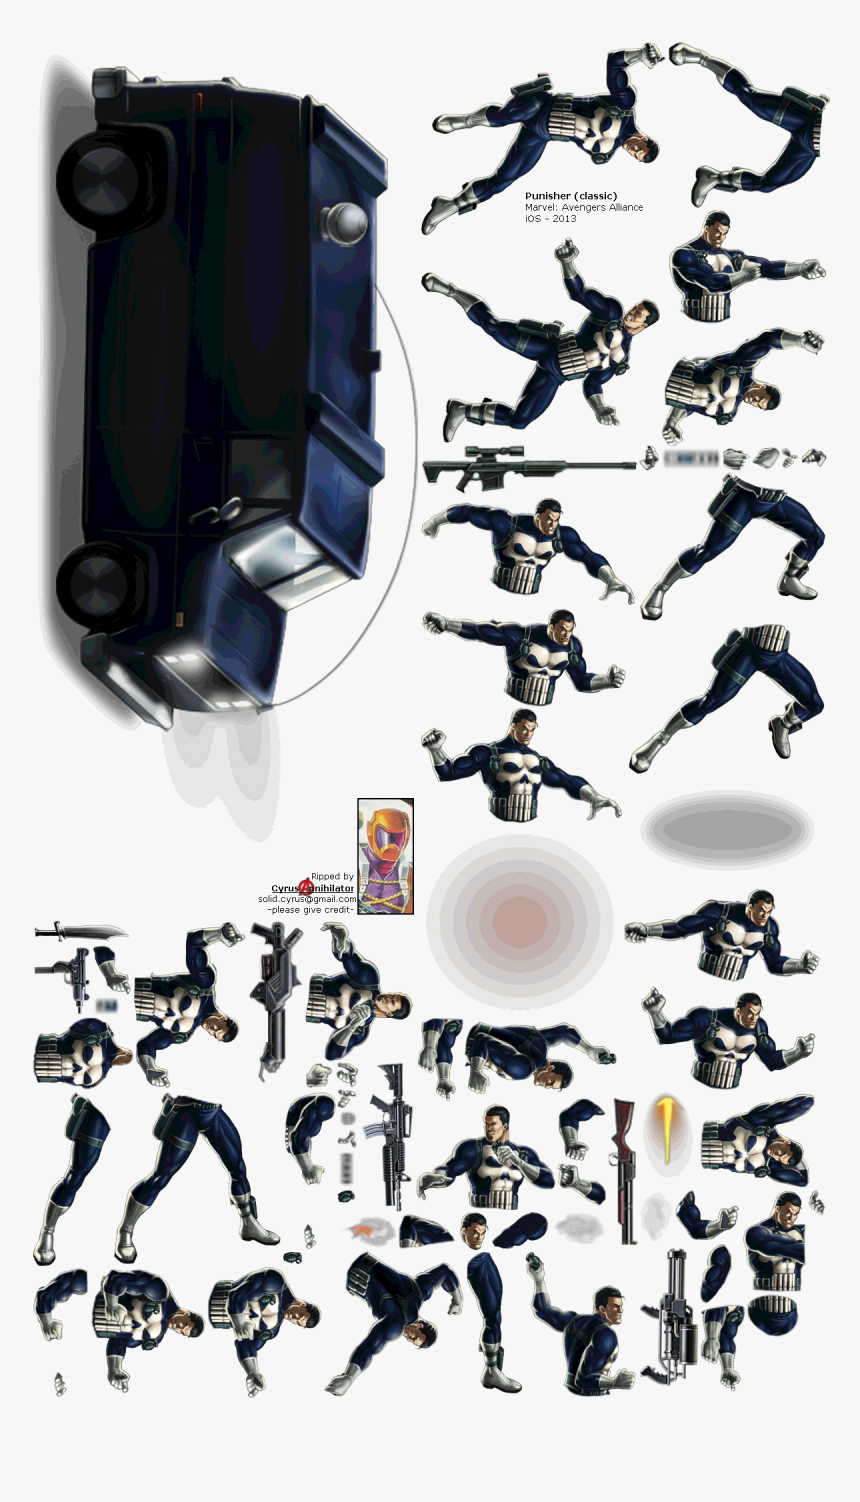 Click For Full Sized Image Punisher - Punisher The Spriters Resources, HD Png Download, Free Download